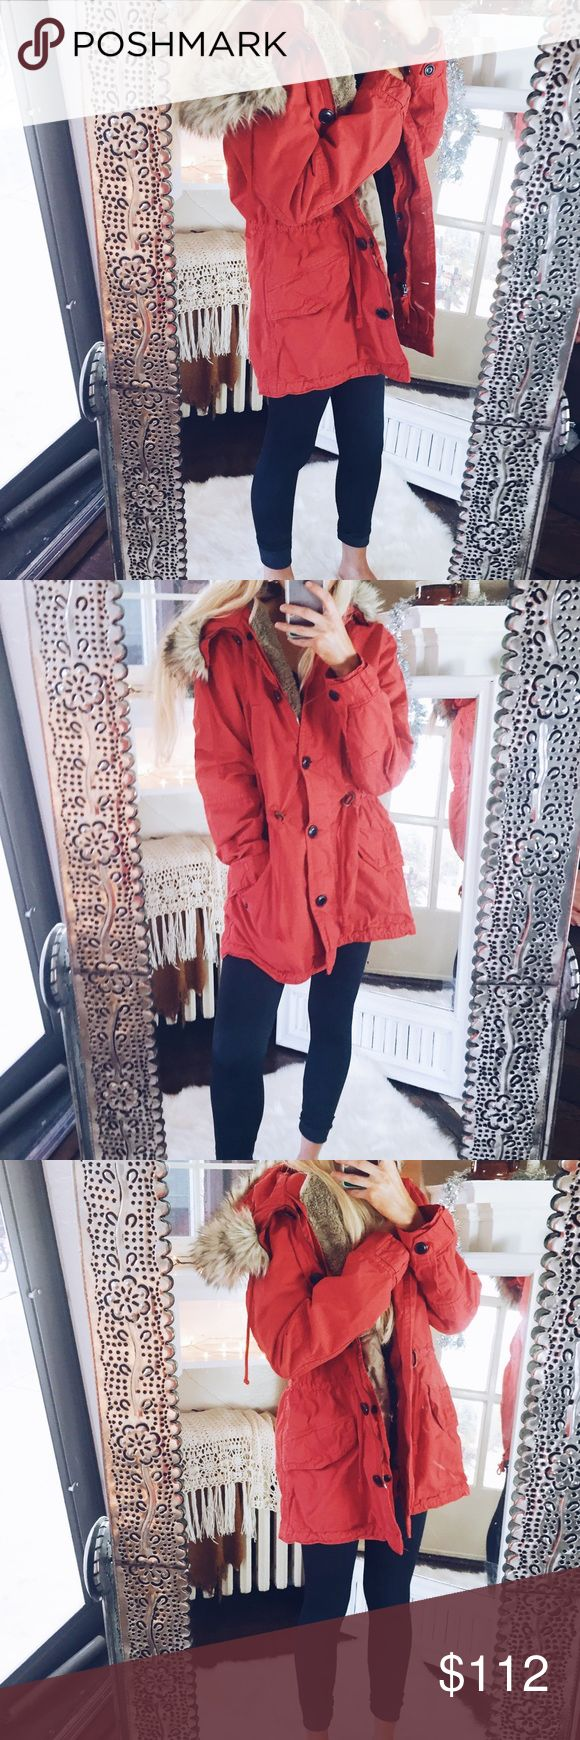 True Red Parka Anorak Winter Coat/Jacket Fur Trim Adjustable waist  Removable fur trim Fur trim has small tear (unnoticeable when on) from unbuttoning I️t too fast $198 originally Removable lining  Super warm and cozy True red! More vibrant in person Made in Indonesia Holiday/seasonal/Jacket/coat/parka/anorak GAP Jackets & Coats Utility Jackets